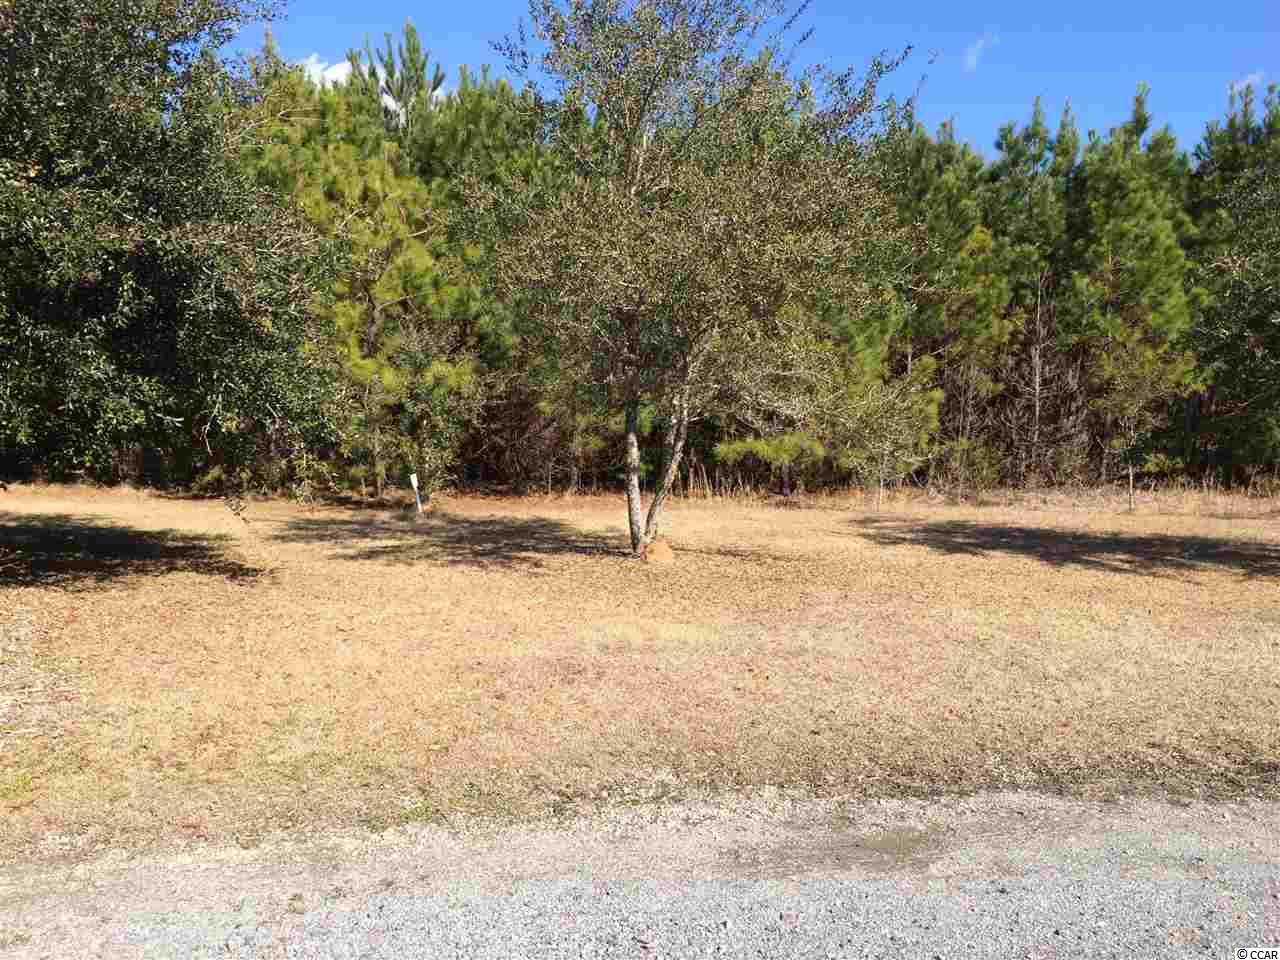 Acreage for Sale at Lot 1 Belleflower Way Lot 1 Belleflower Way Georgetown, South Carolina 29440 United States